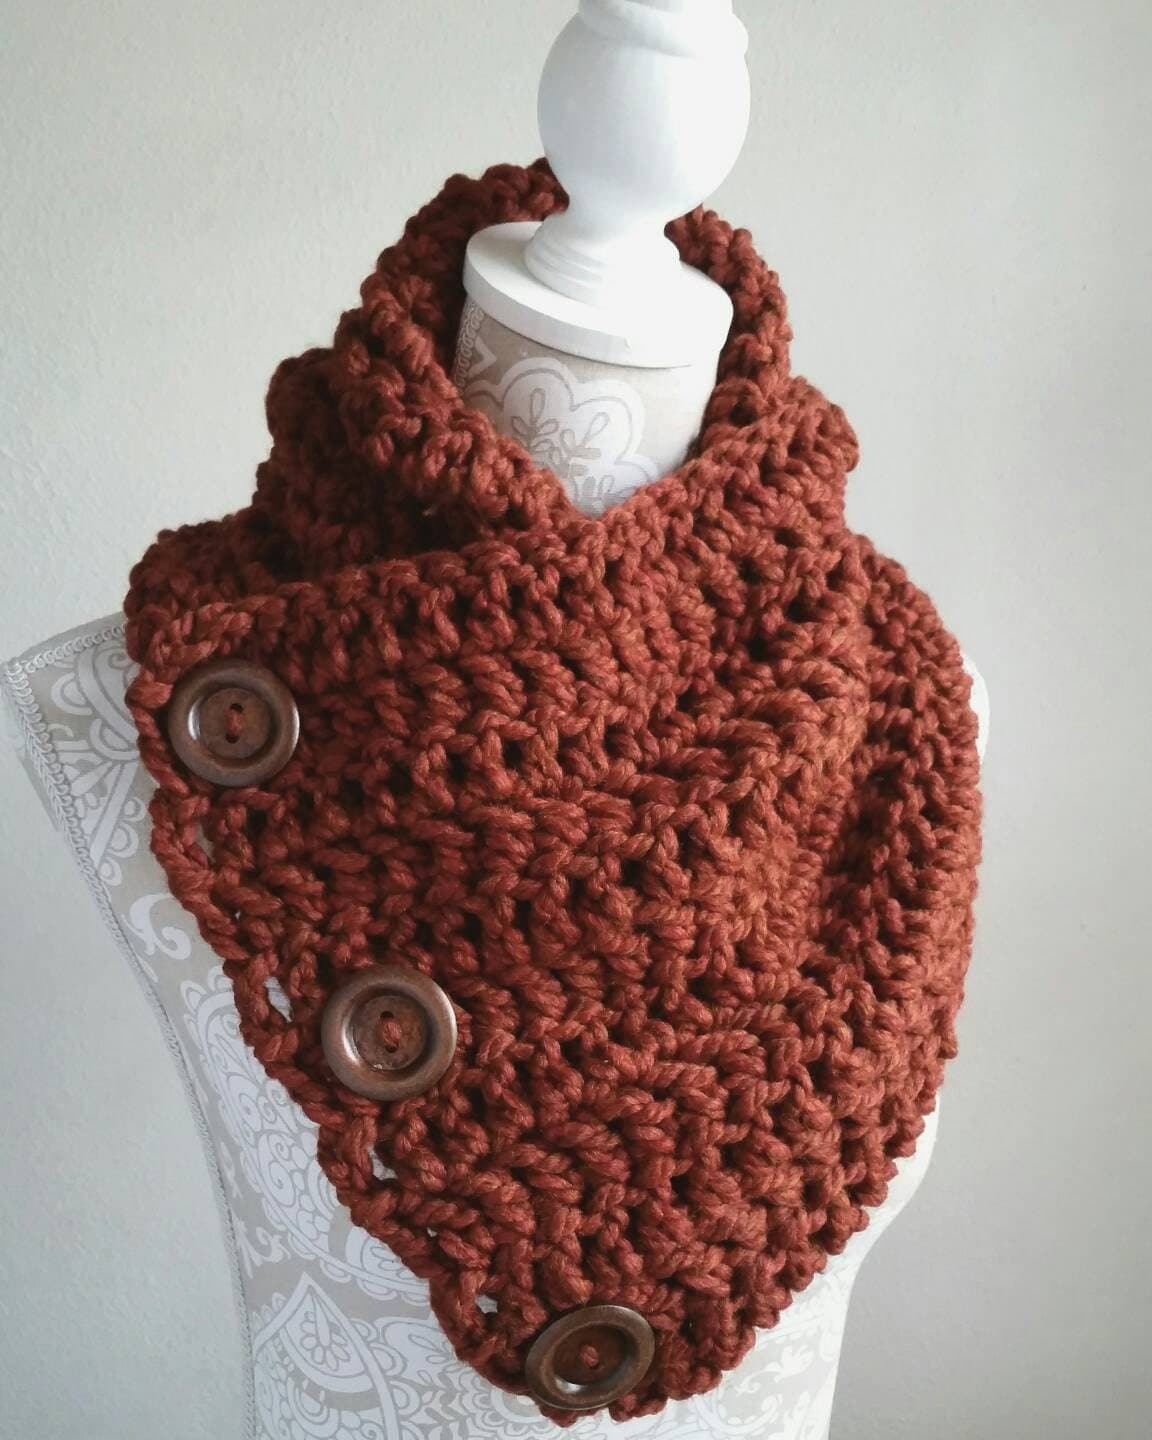 Crochet Scarf Pattern With Button : Crochet pattern 3 button scarf crochet scarf by GingerKnotShop